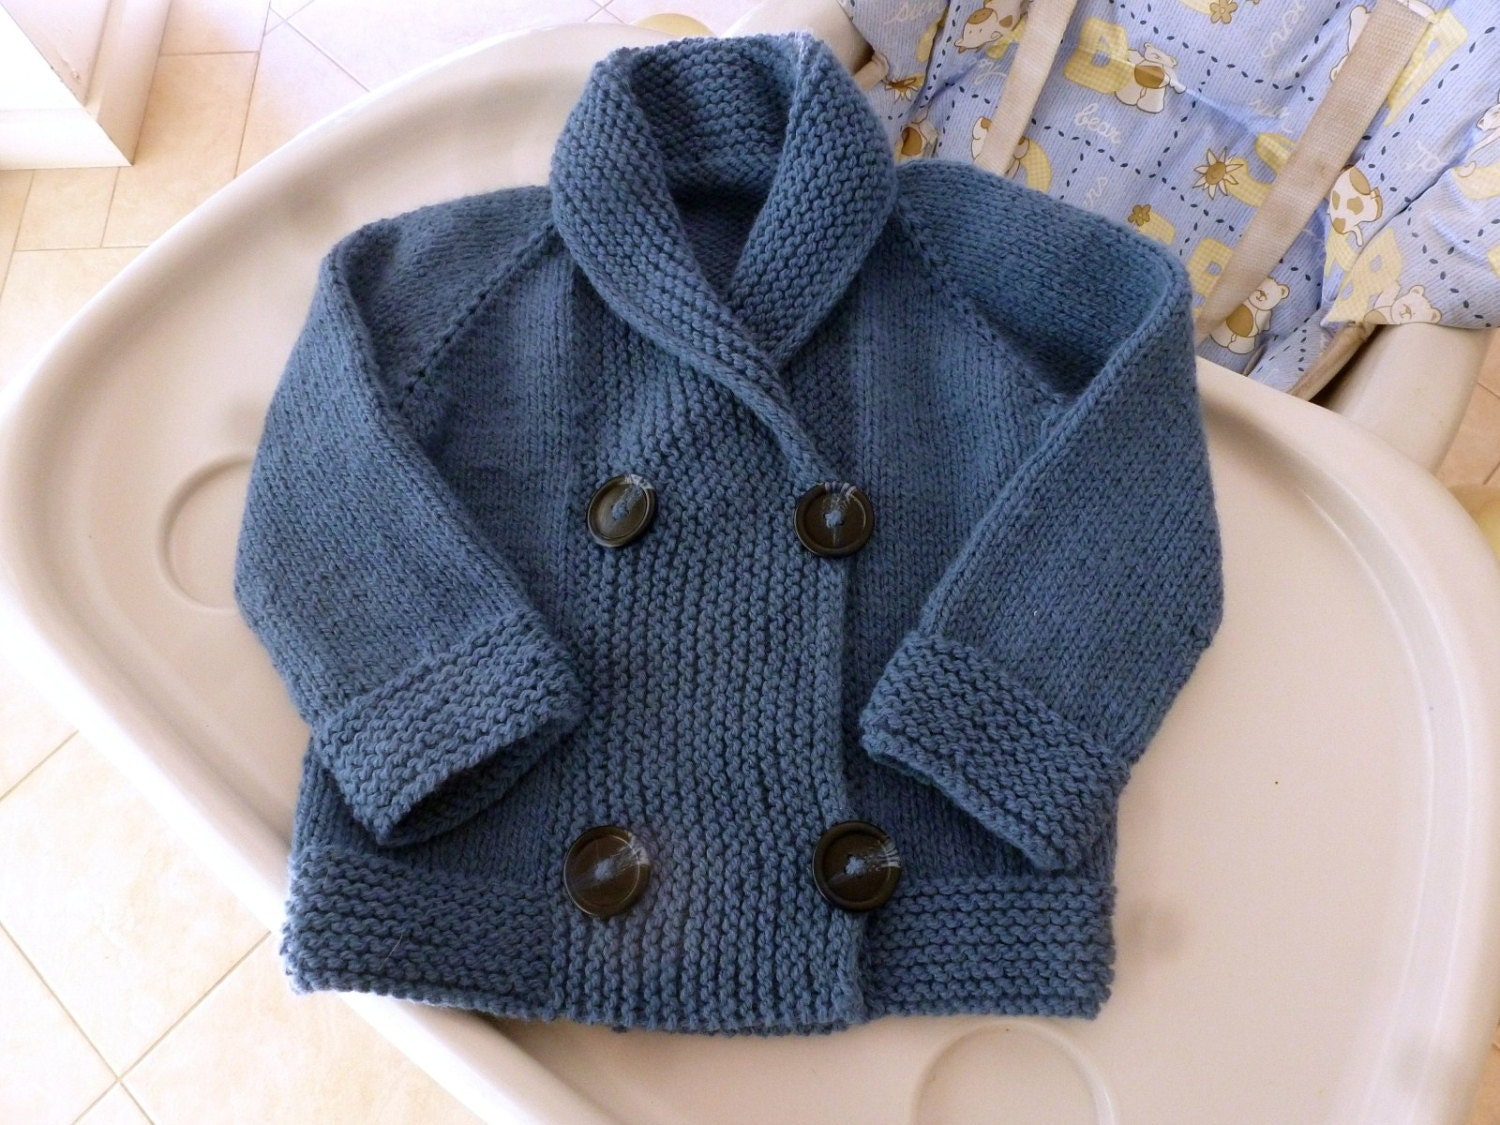 Hand knitted double breasted baby jacket shawl by SnuggleBubs